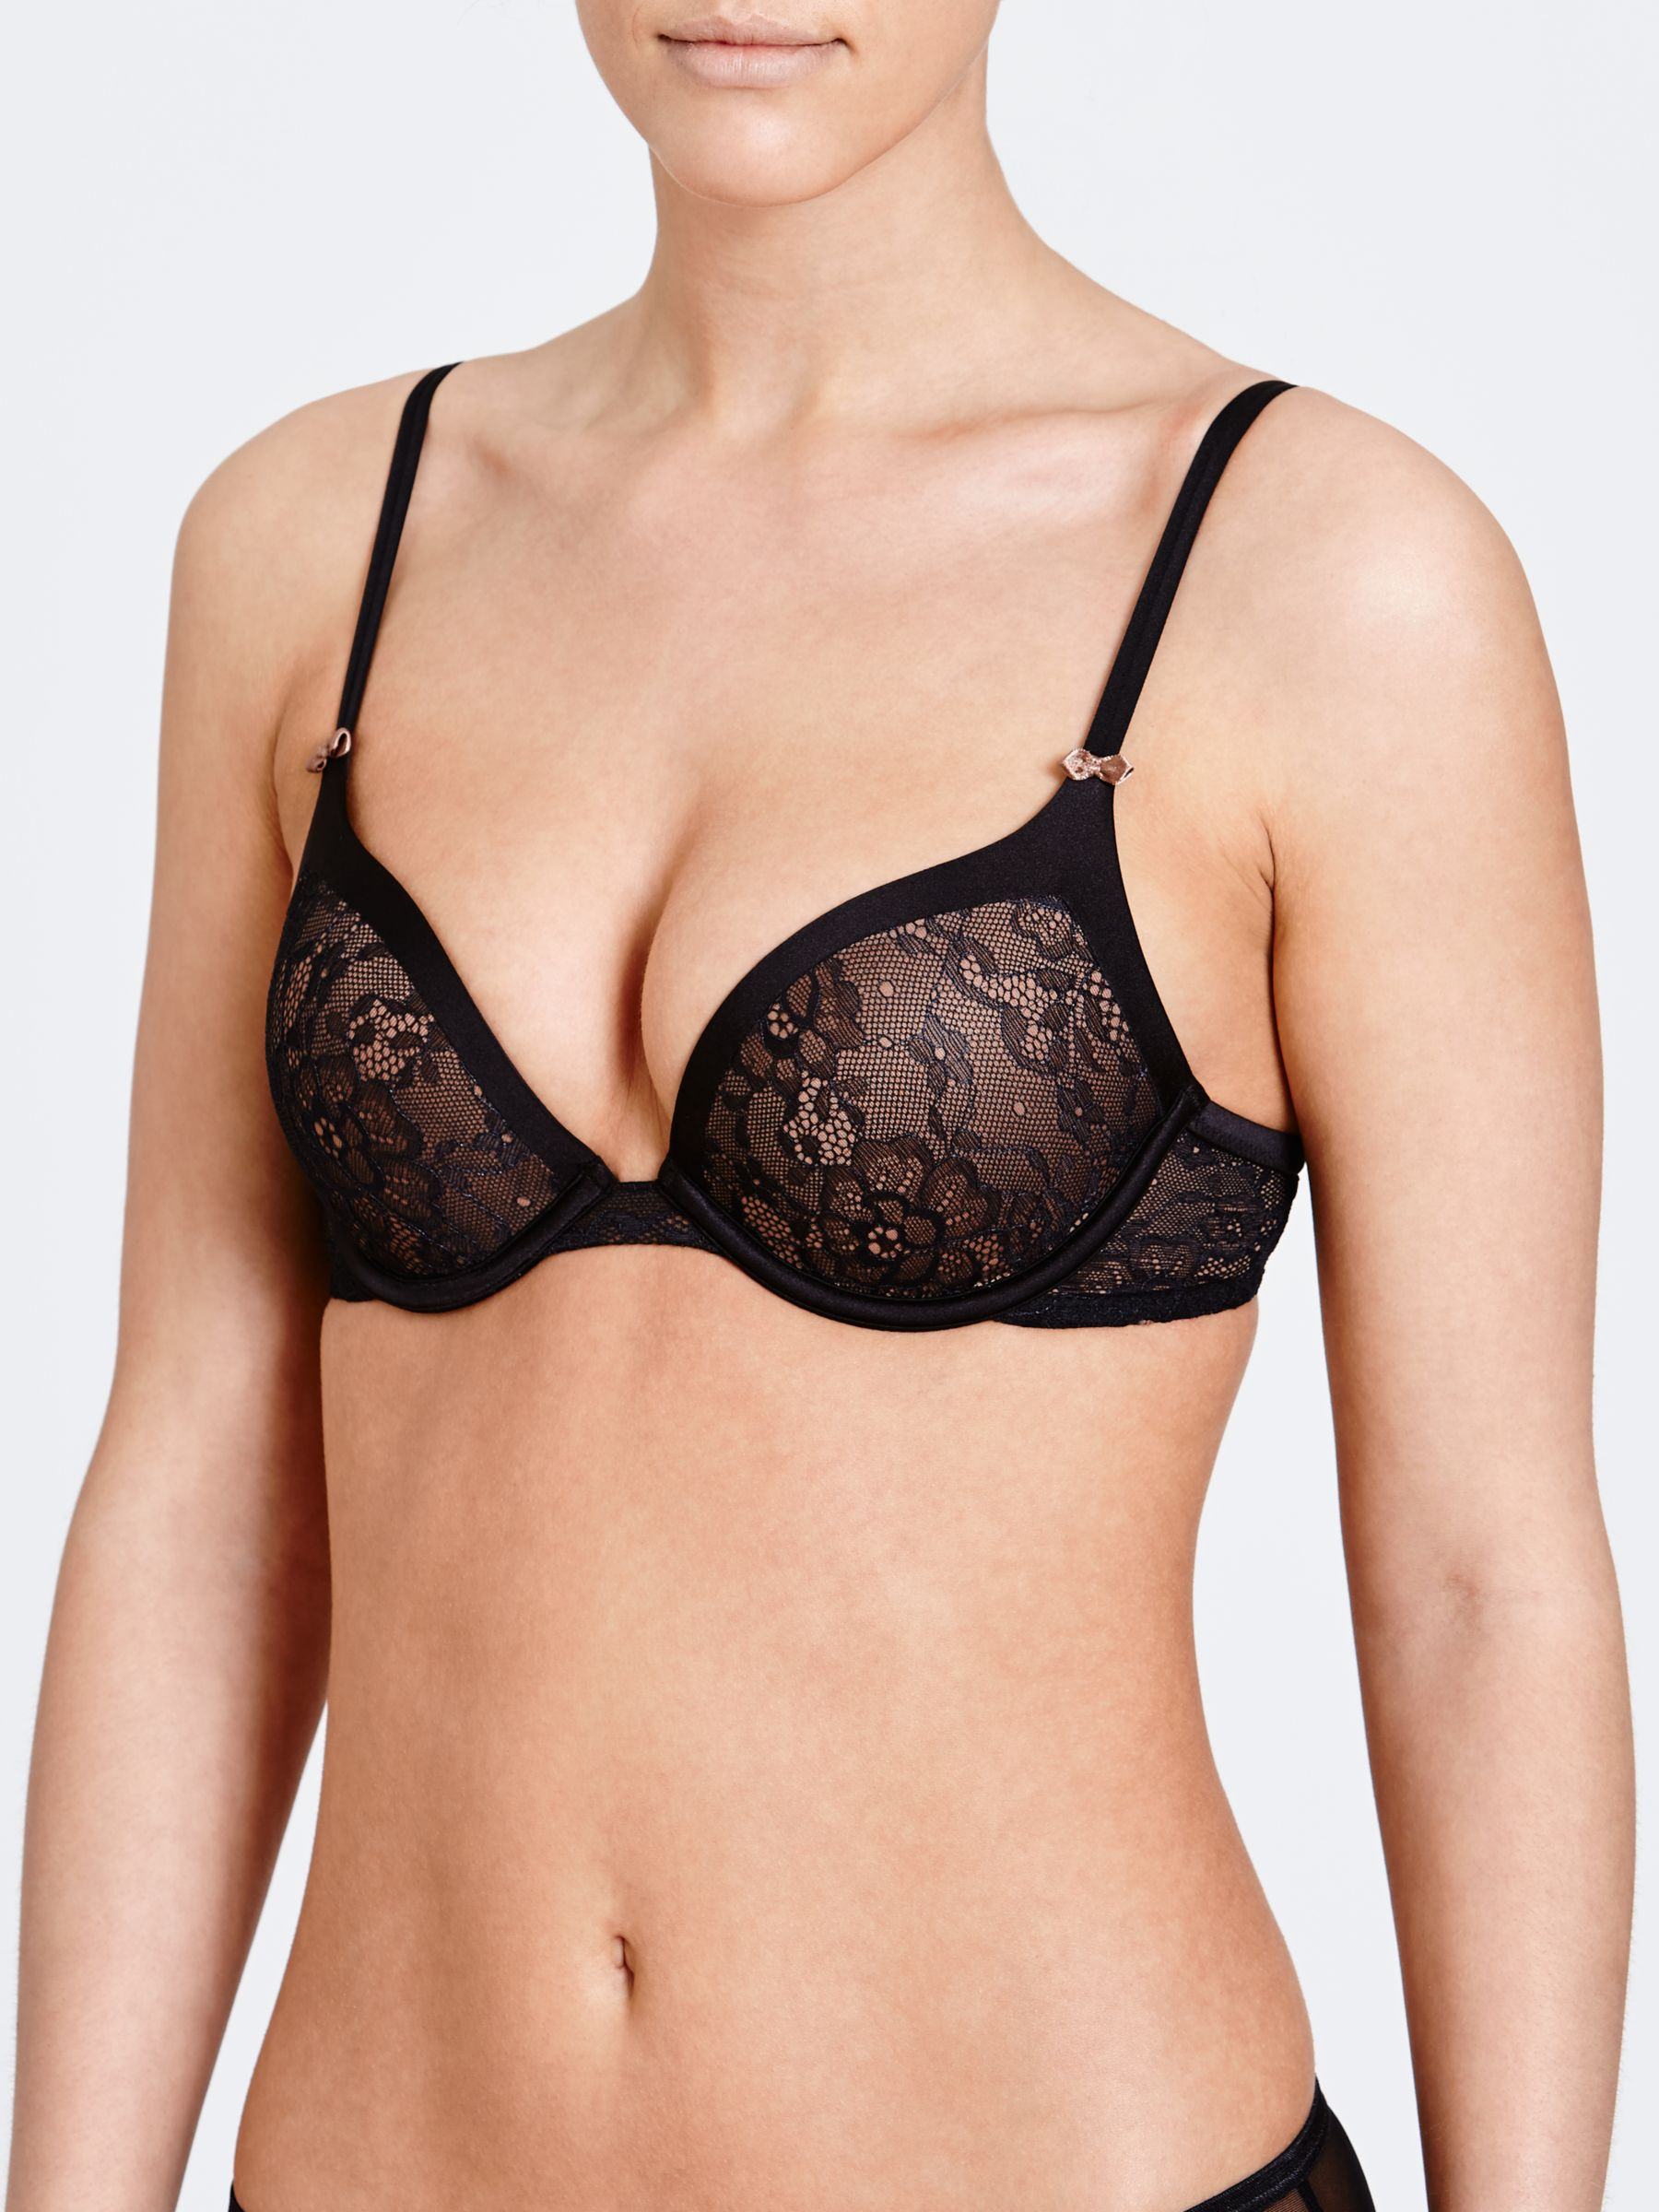 DKNY Super Sleek Embellished Push Up Bra, Black / Brownie